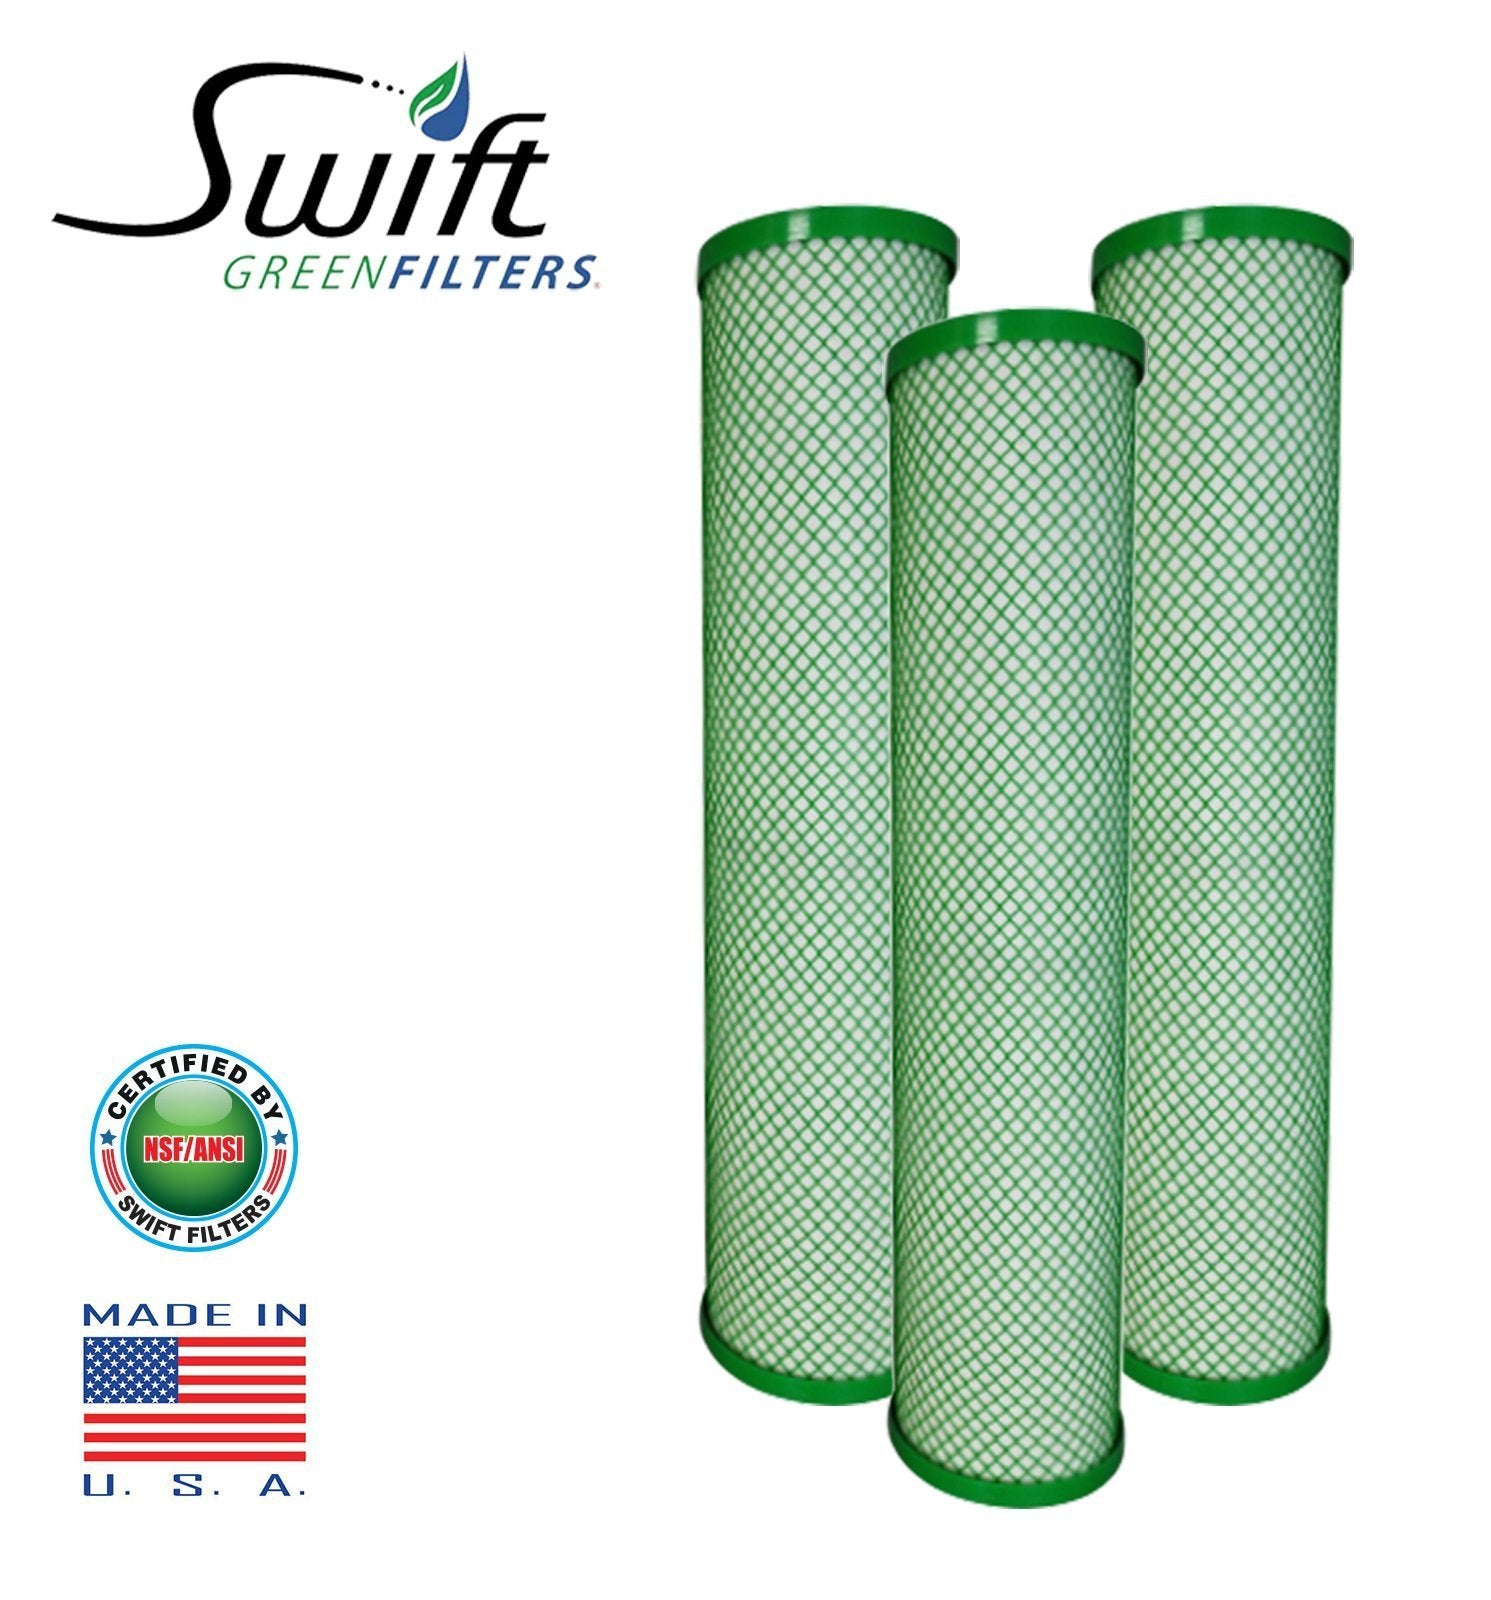 "Swift (SGF20CL2) 20""x 2.75"" CL2 Green Block Carbon Filter 10 Micron By Swift Green Filters - The Filters Club"